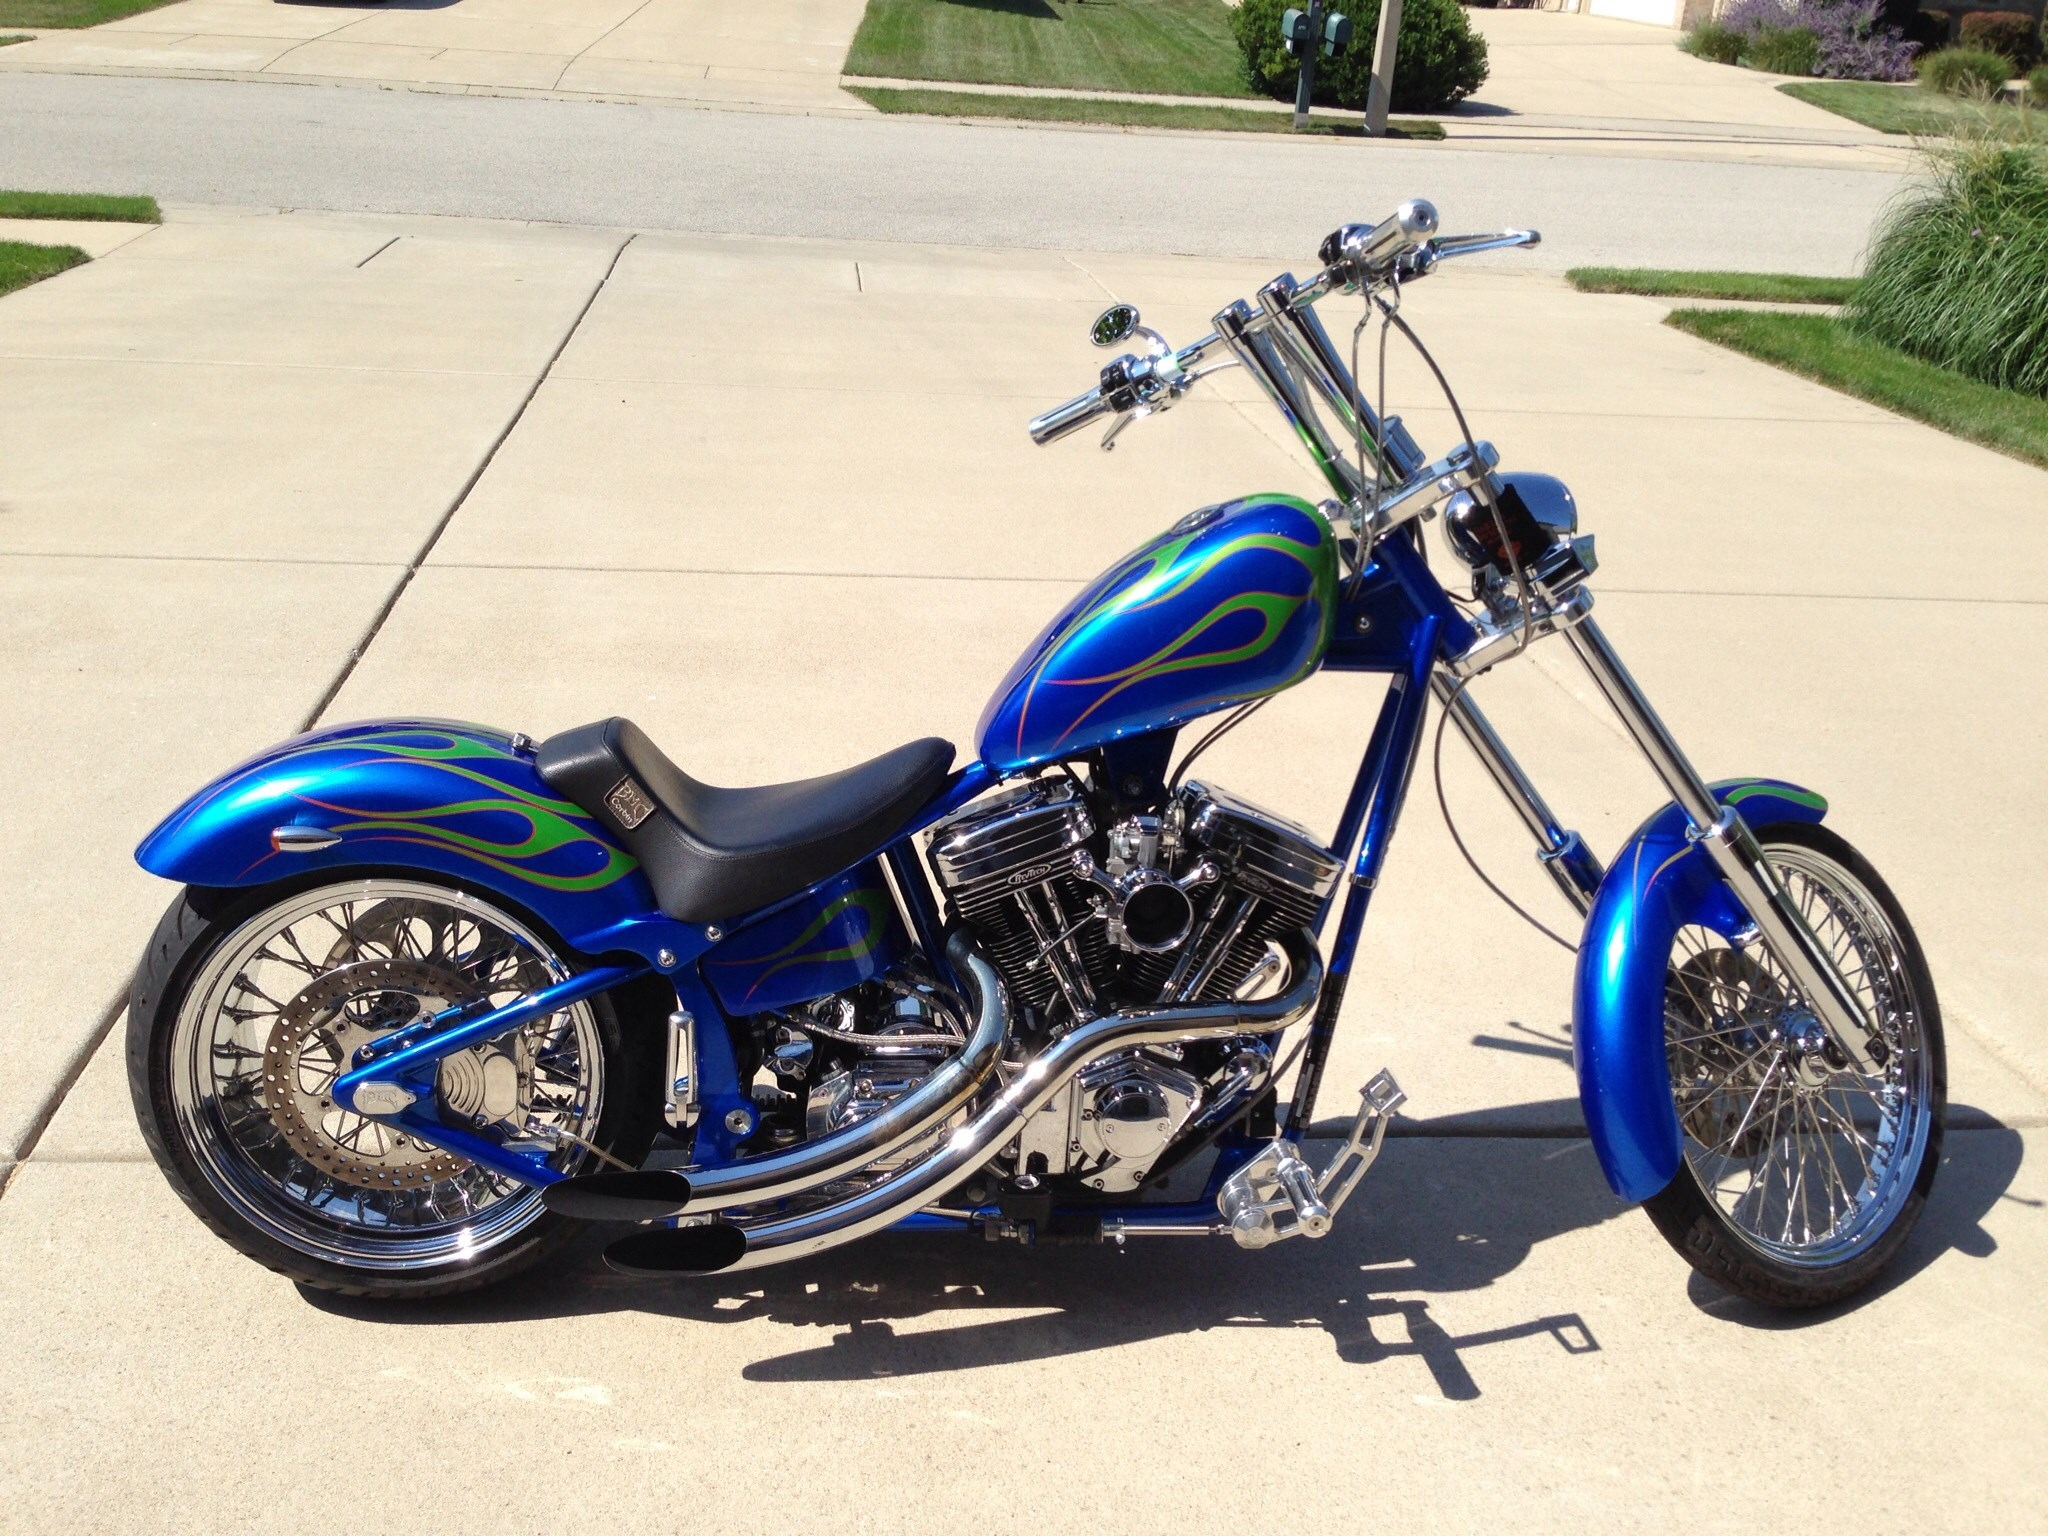 CUSTOM CHOPPER motorbike tuning bike hot rod rods    tu